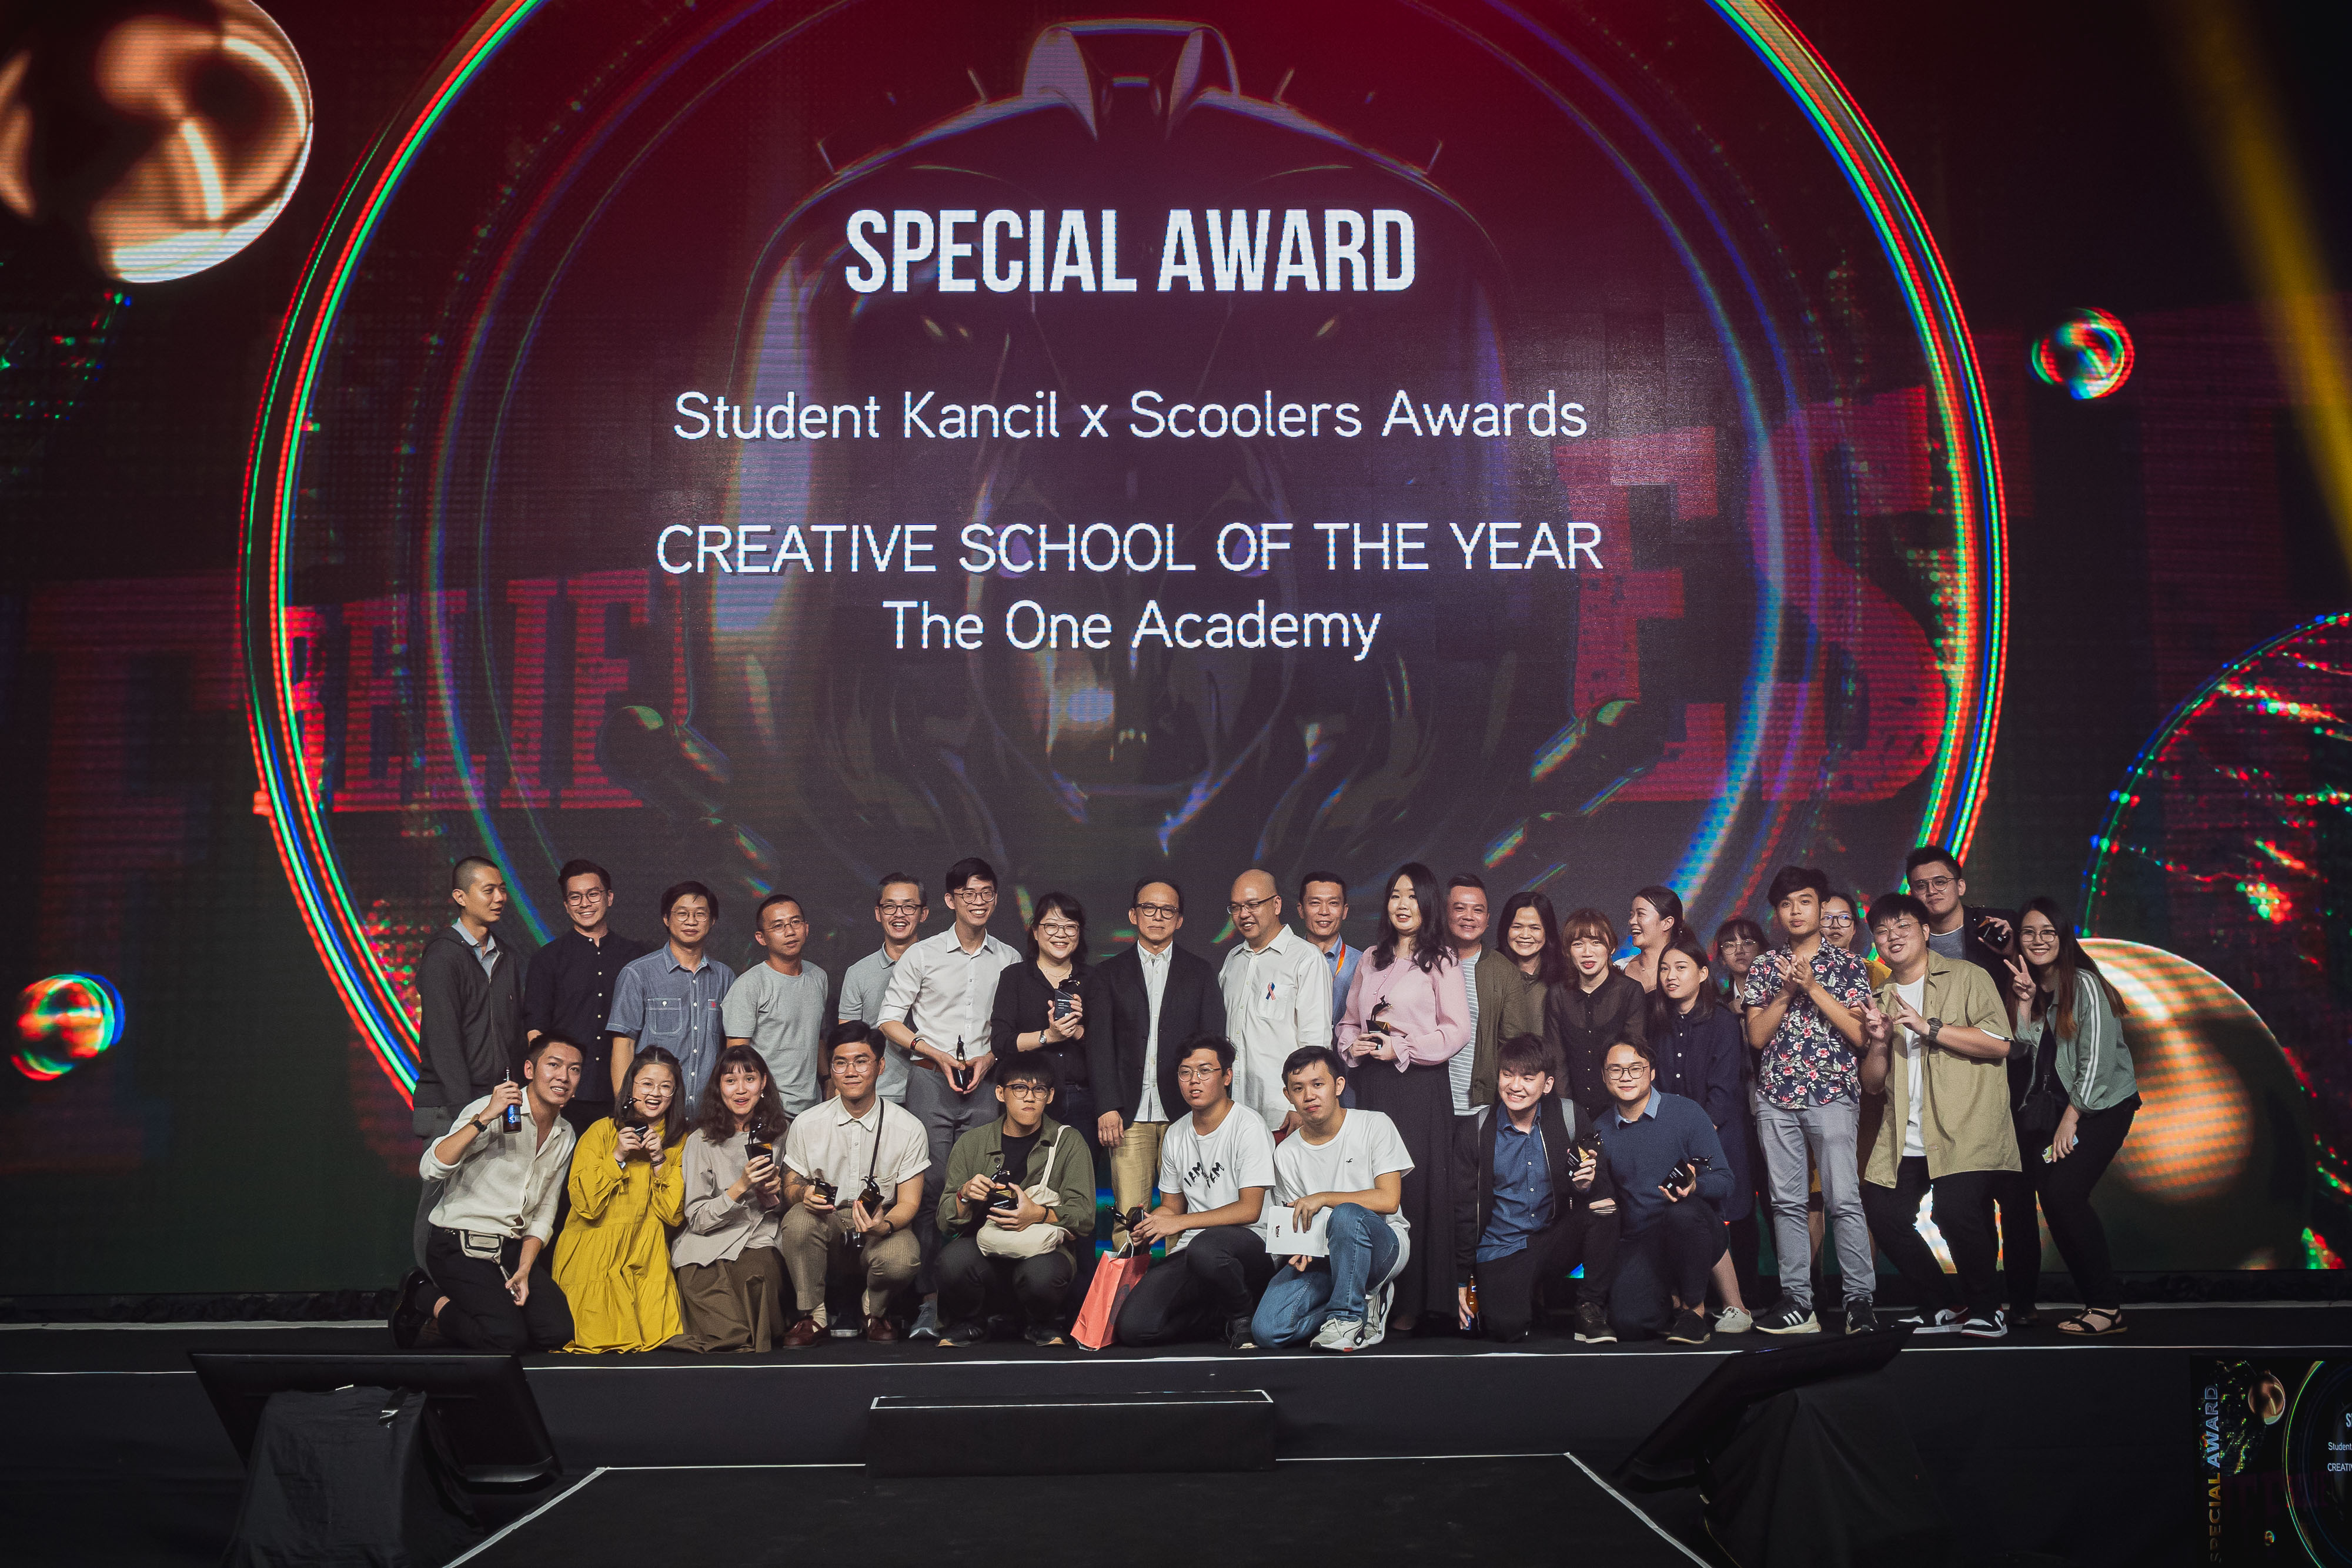 The One Academy's team brings home the honoured Creative School of the Year award